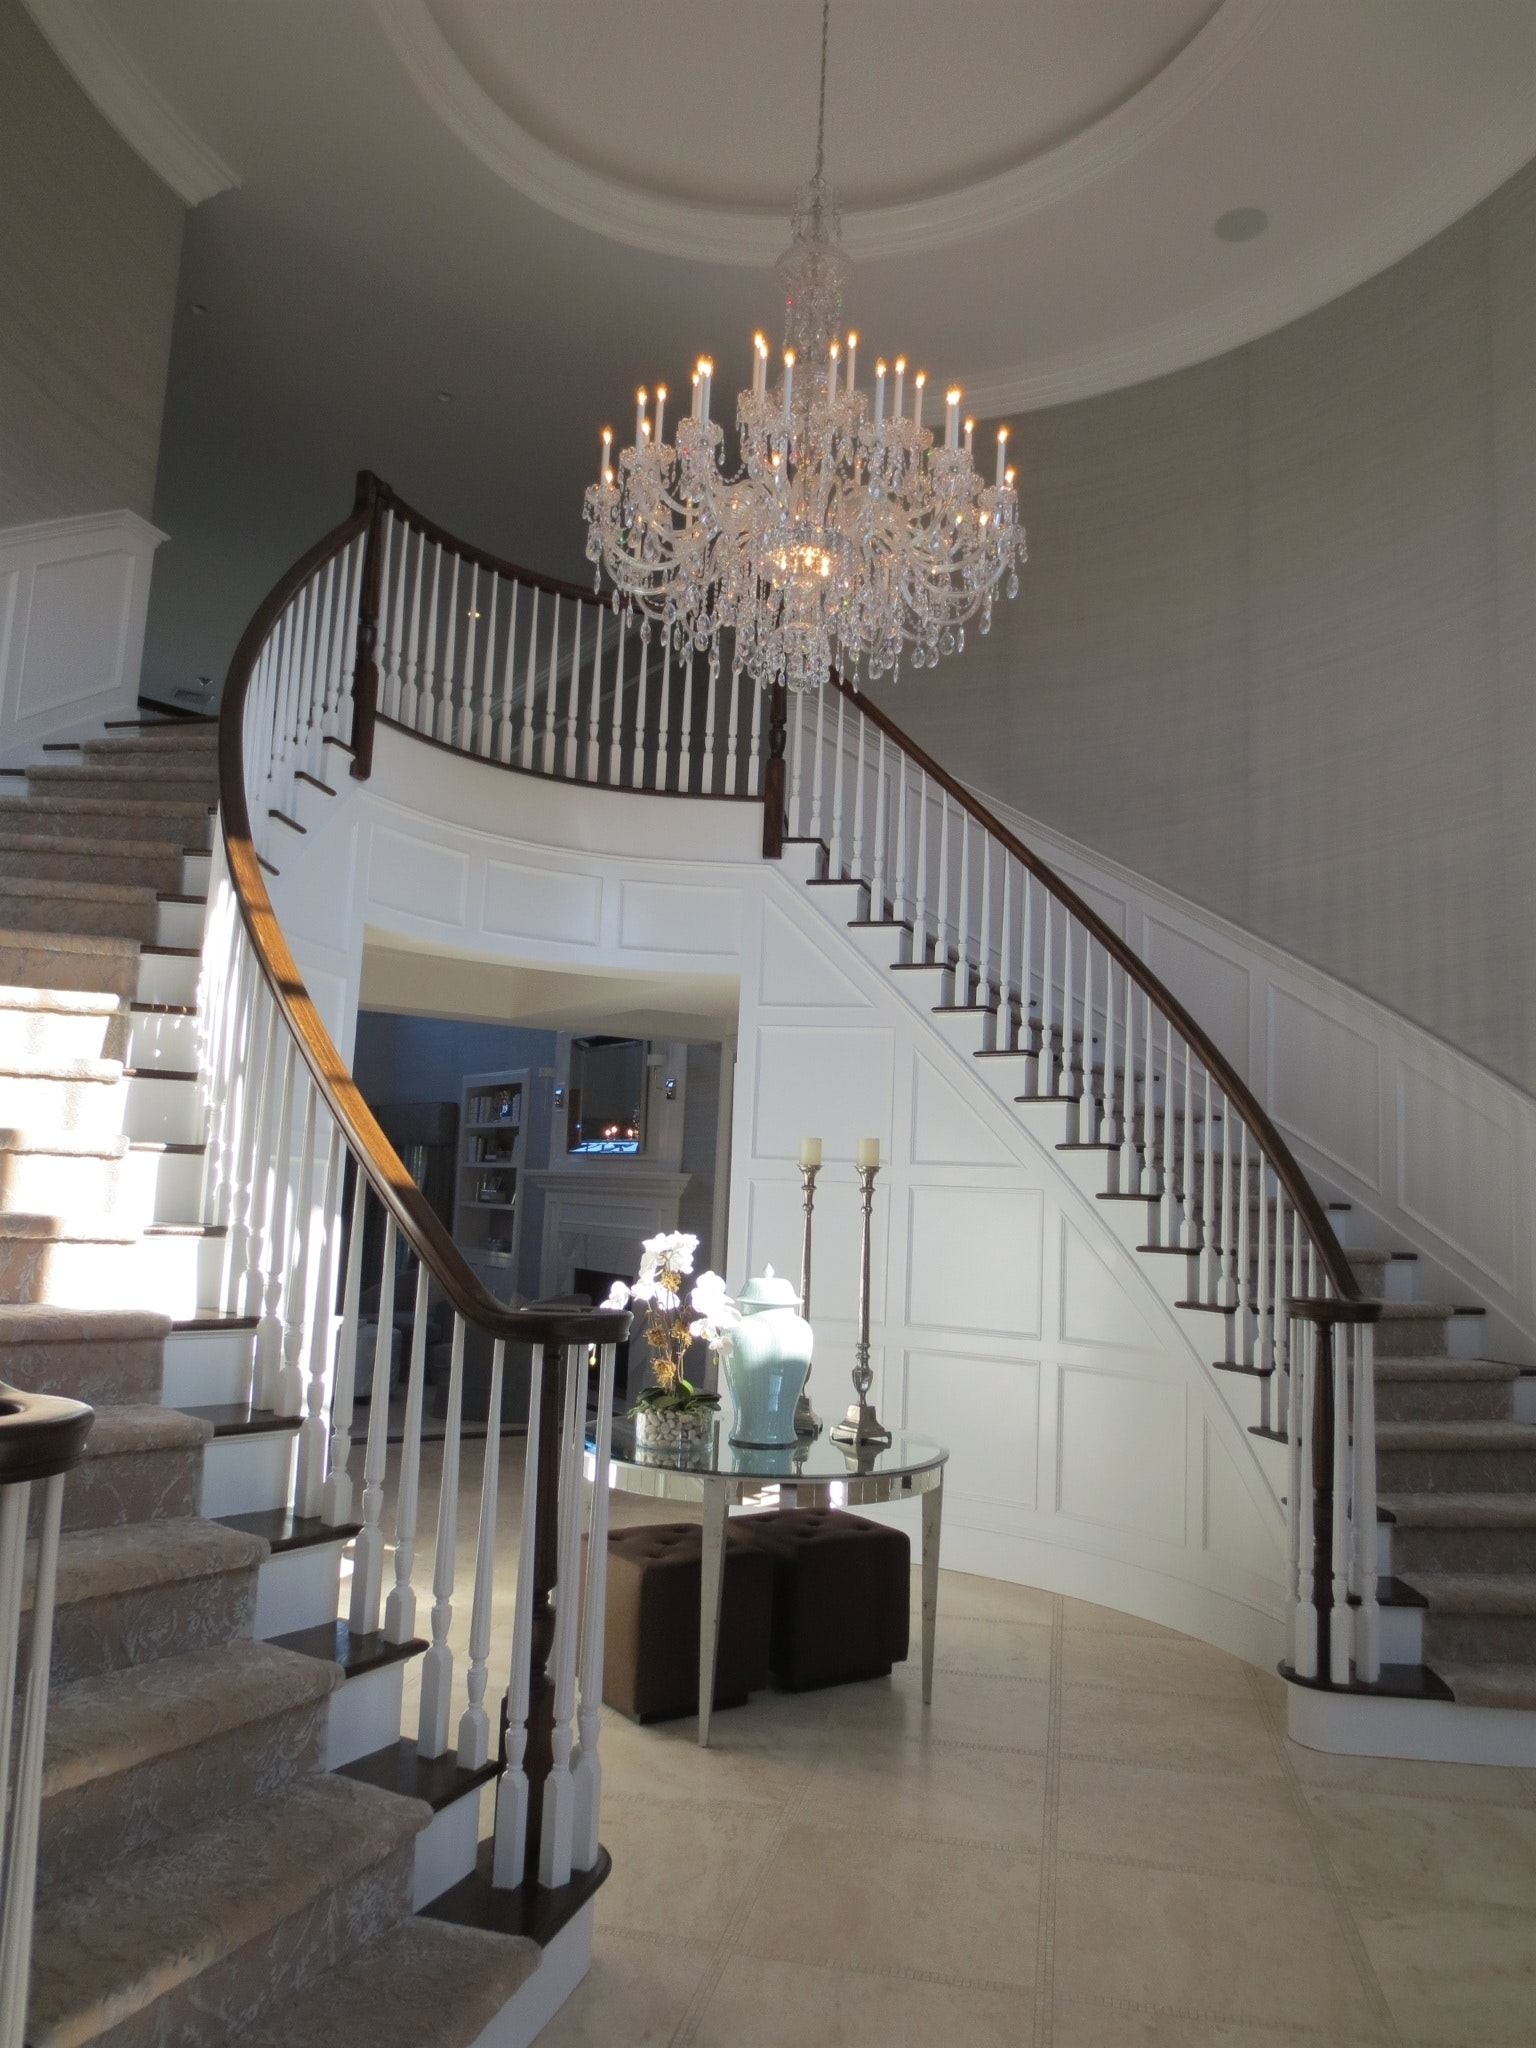 Latest Light : Large Chandeliers For Foyers And Best Stairway Lighting Inside Stairway Chandelier (View 4 of 20)